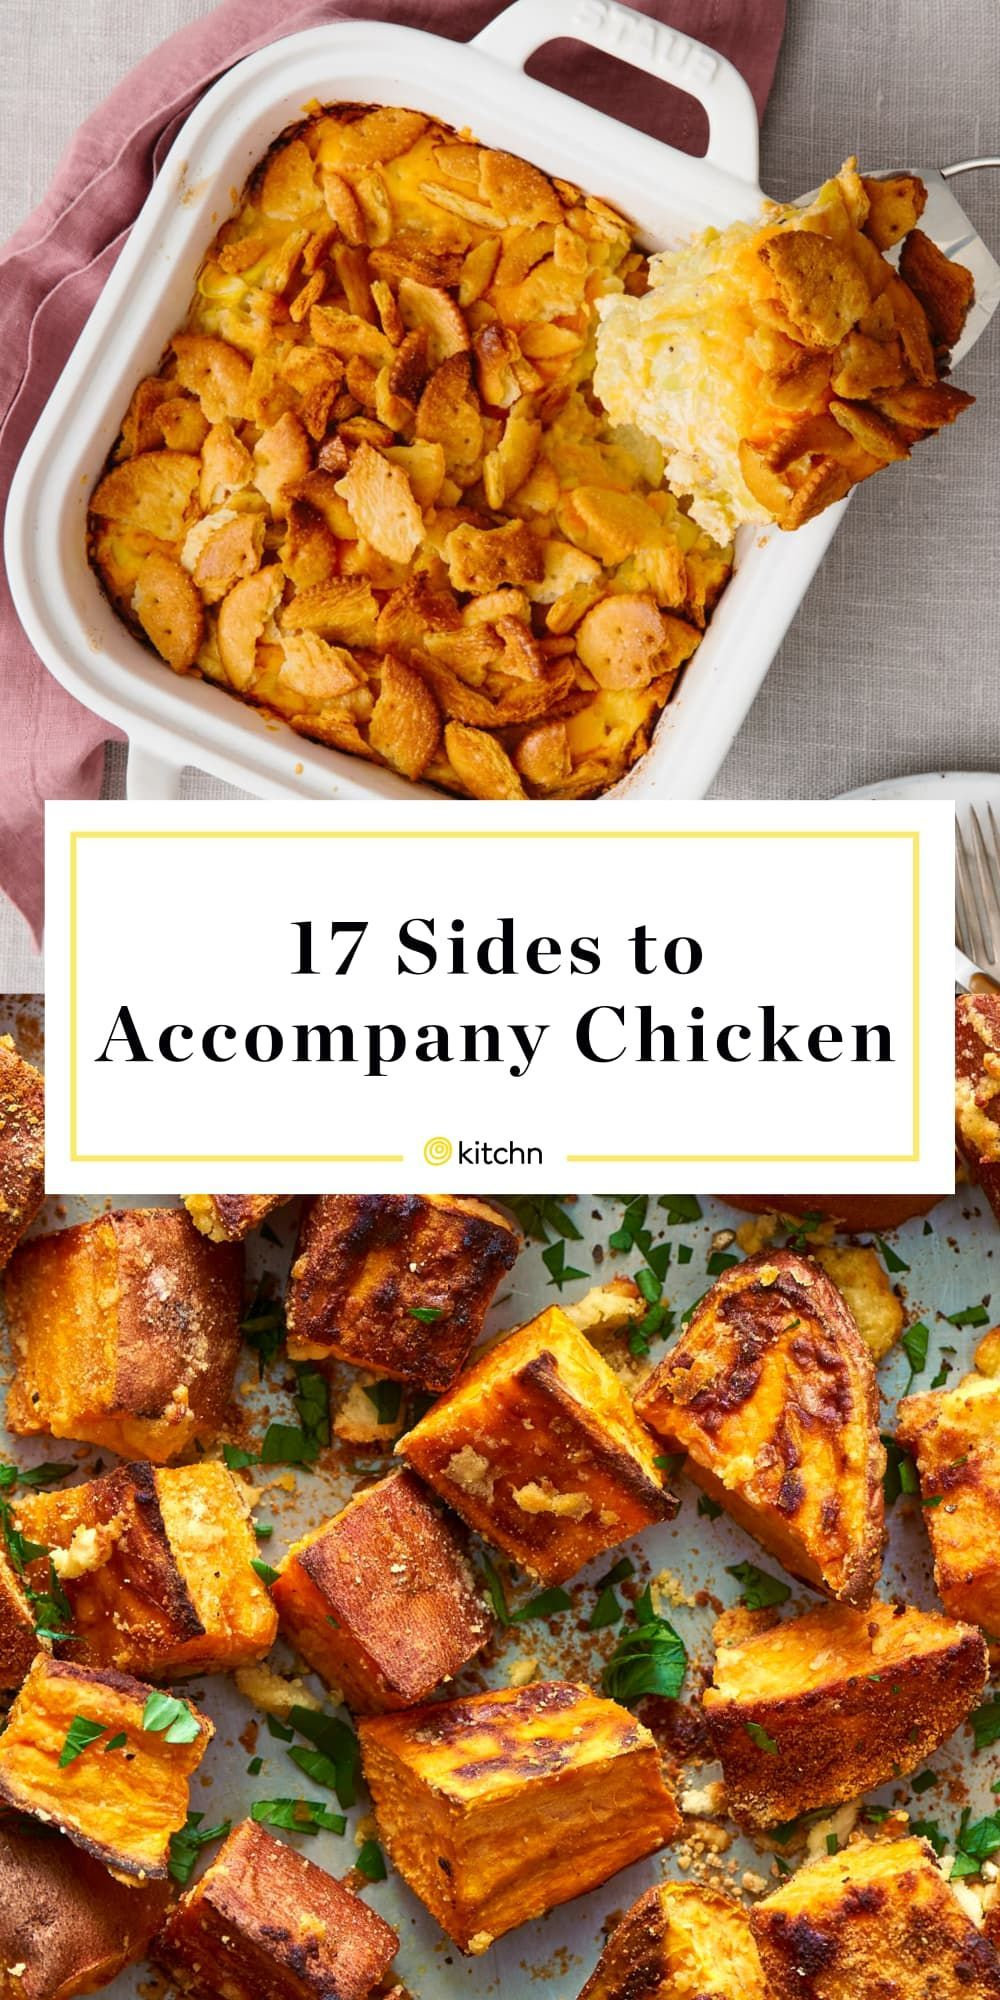 17 Side Dishes To Serve With Roast Chicken Chickensidedishes Side Dishes To Serv Roast Chicken Side Dishes Bbq Chicken Side Dishes Grilled Chicken Side Dishes